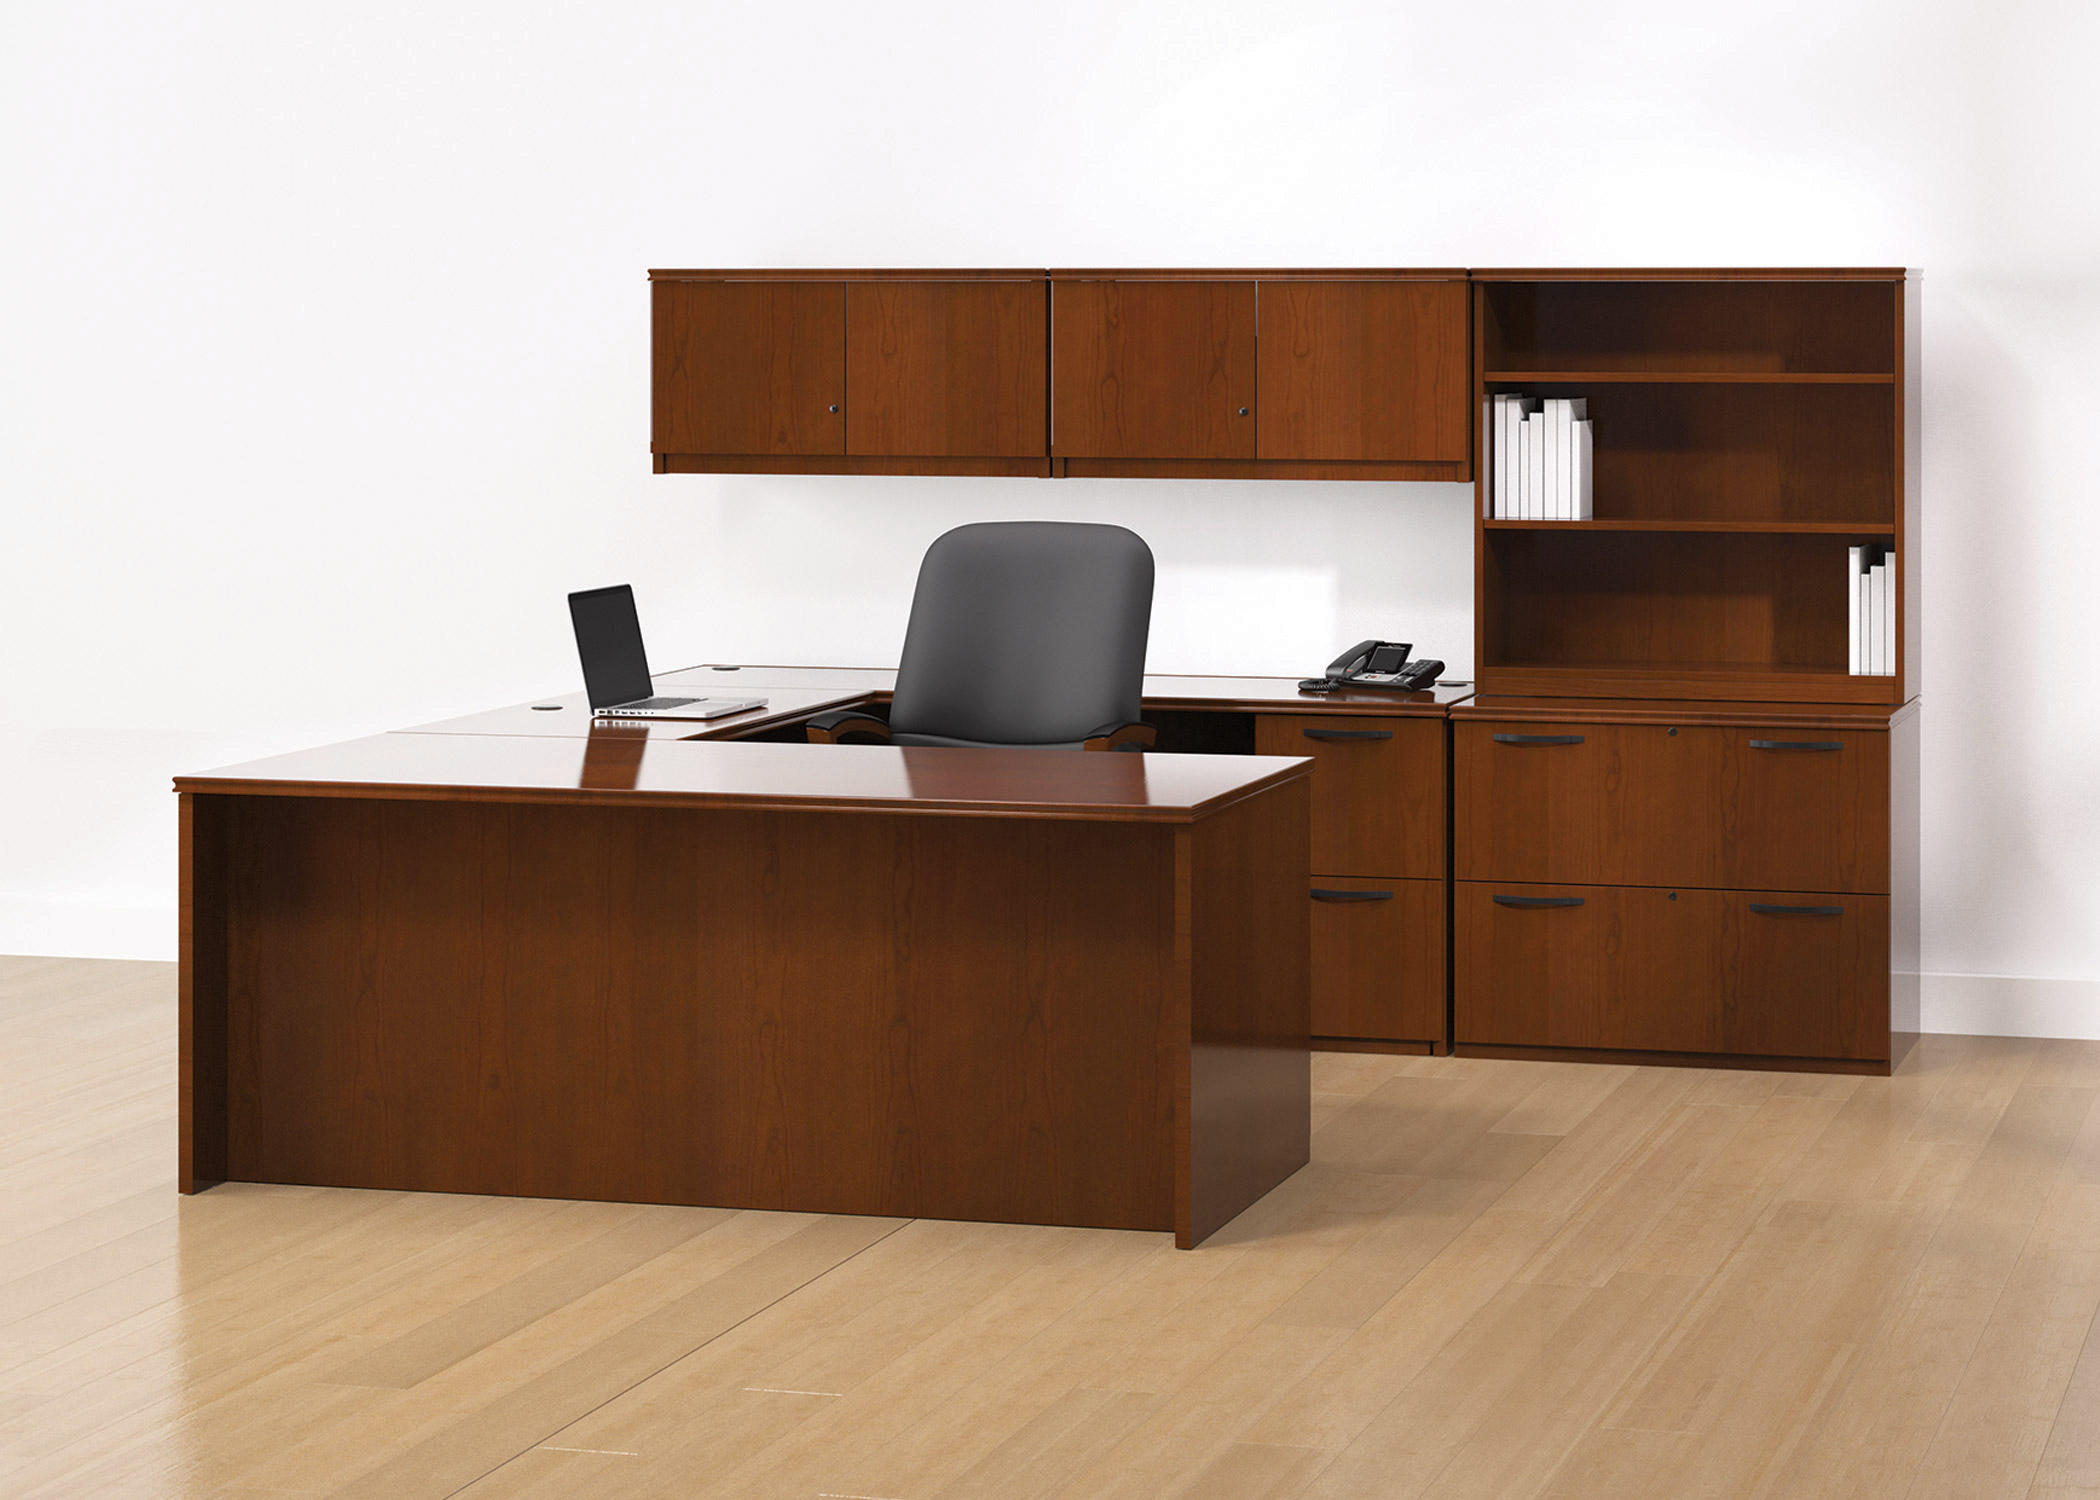 Flourish Desk Desks From National Office Furniture Architonic